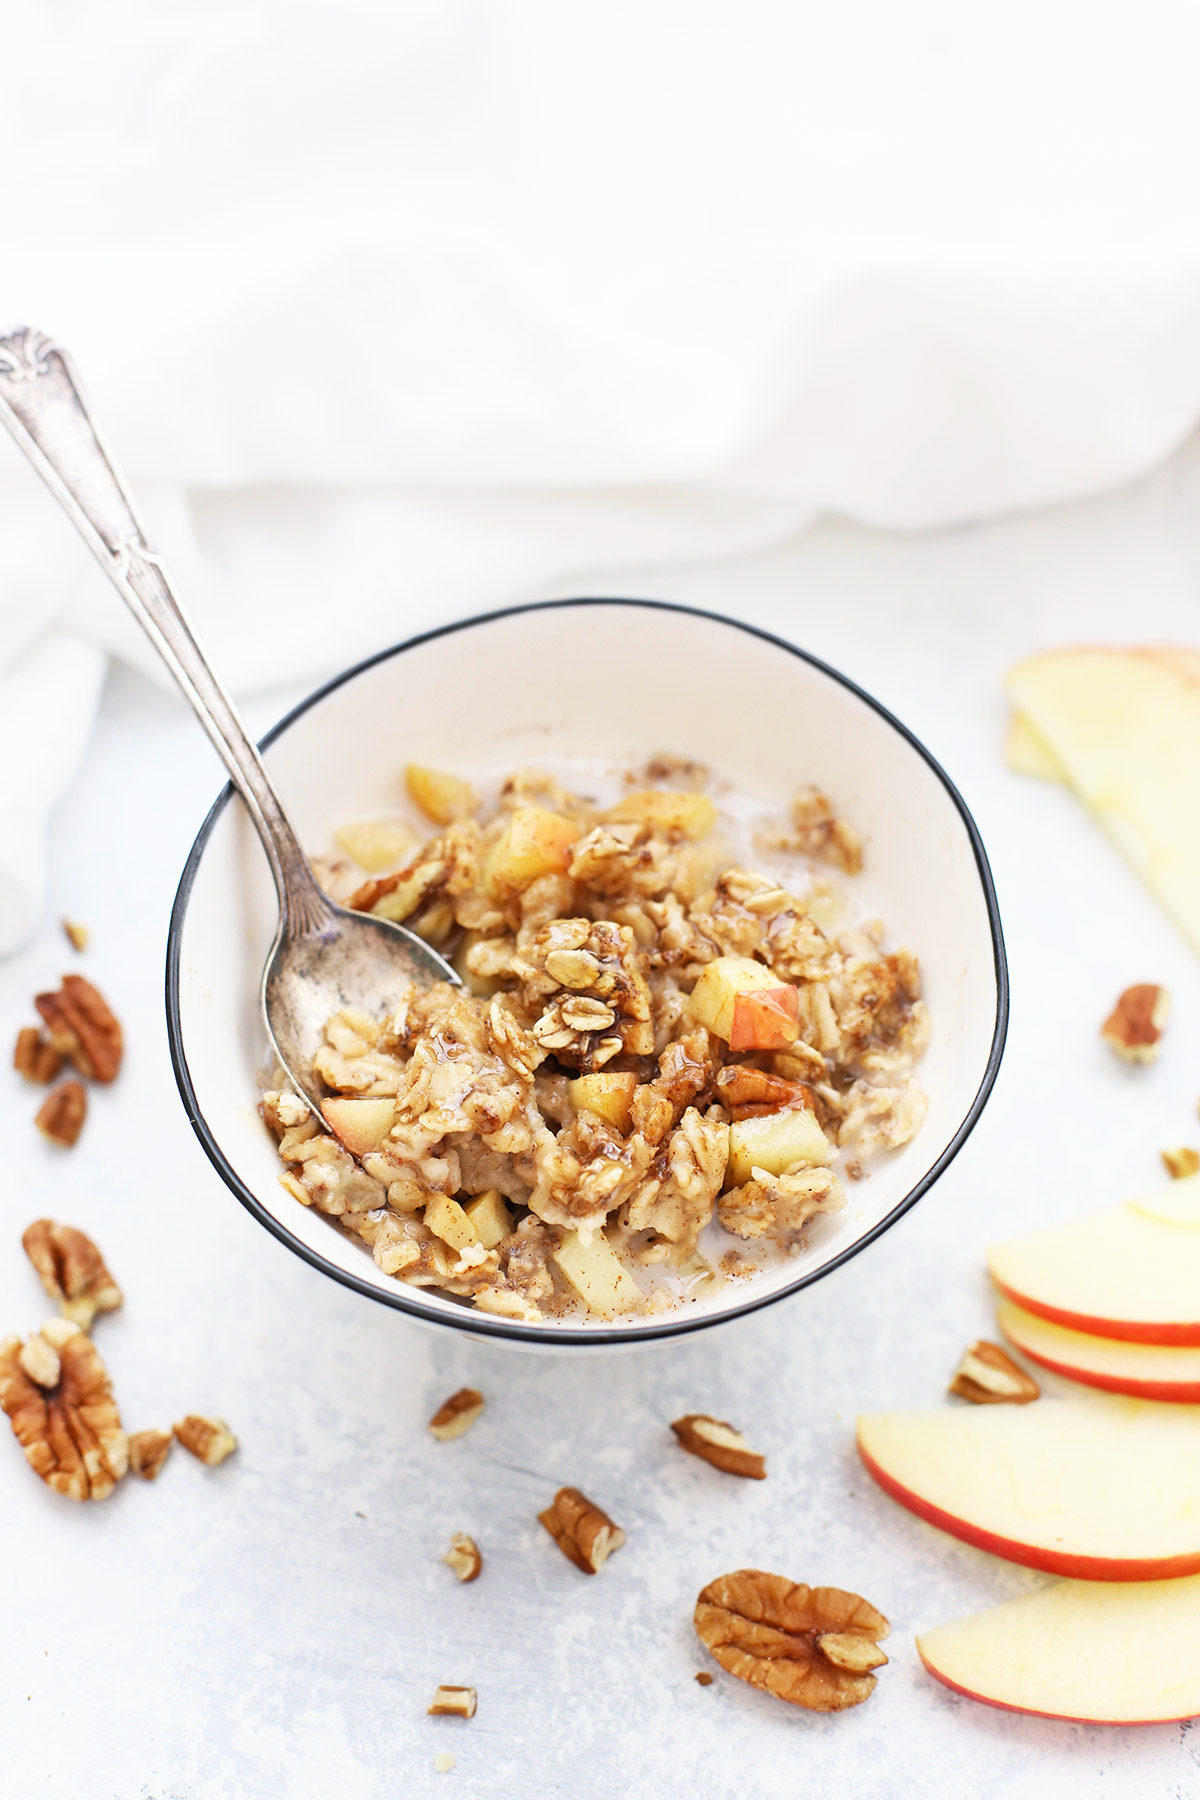 A bowl of baked cinnamon apple oatmeal with milk.